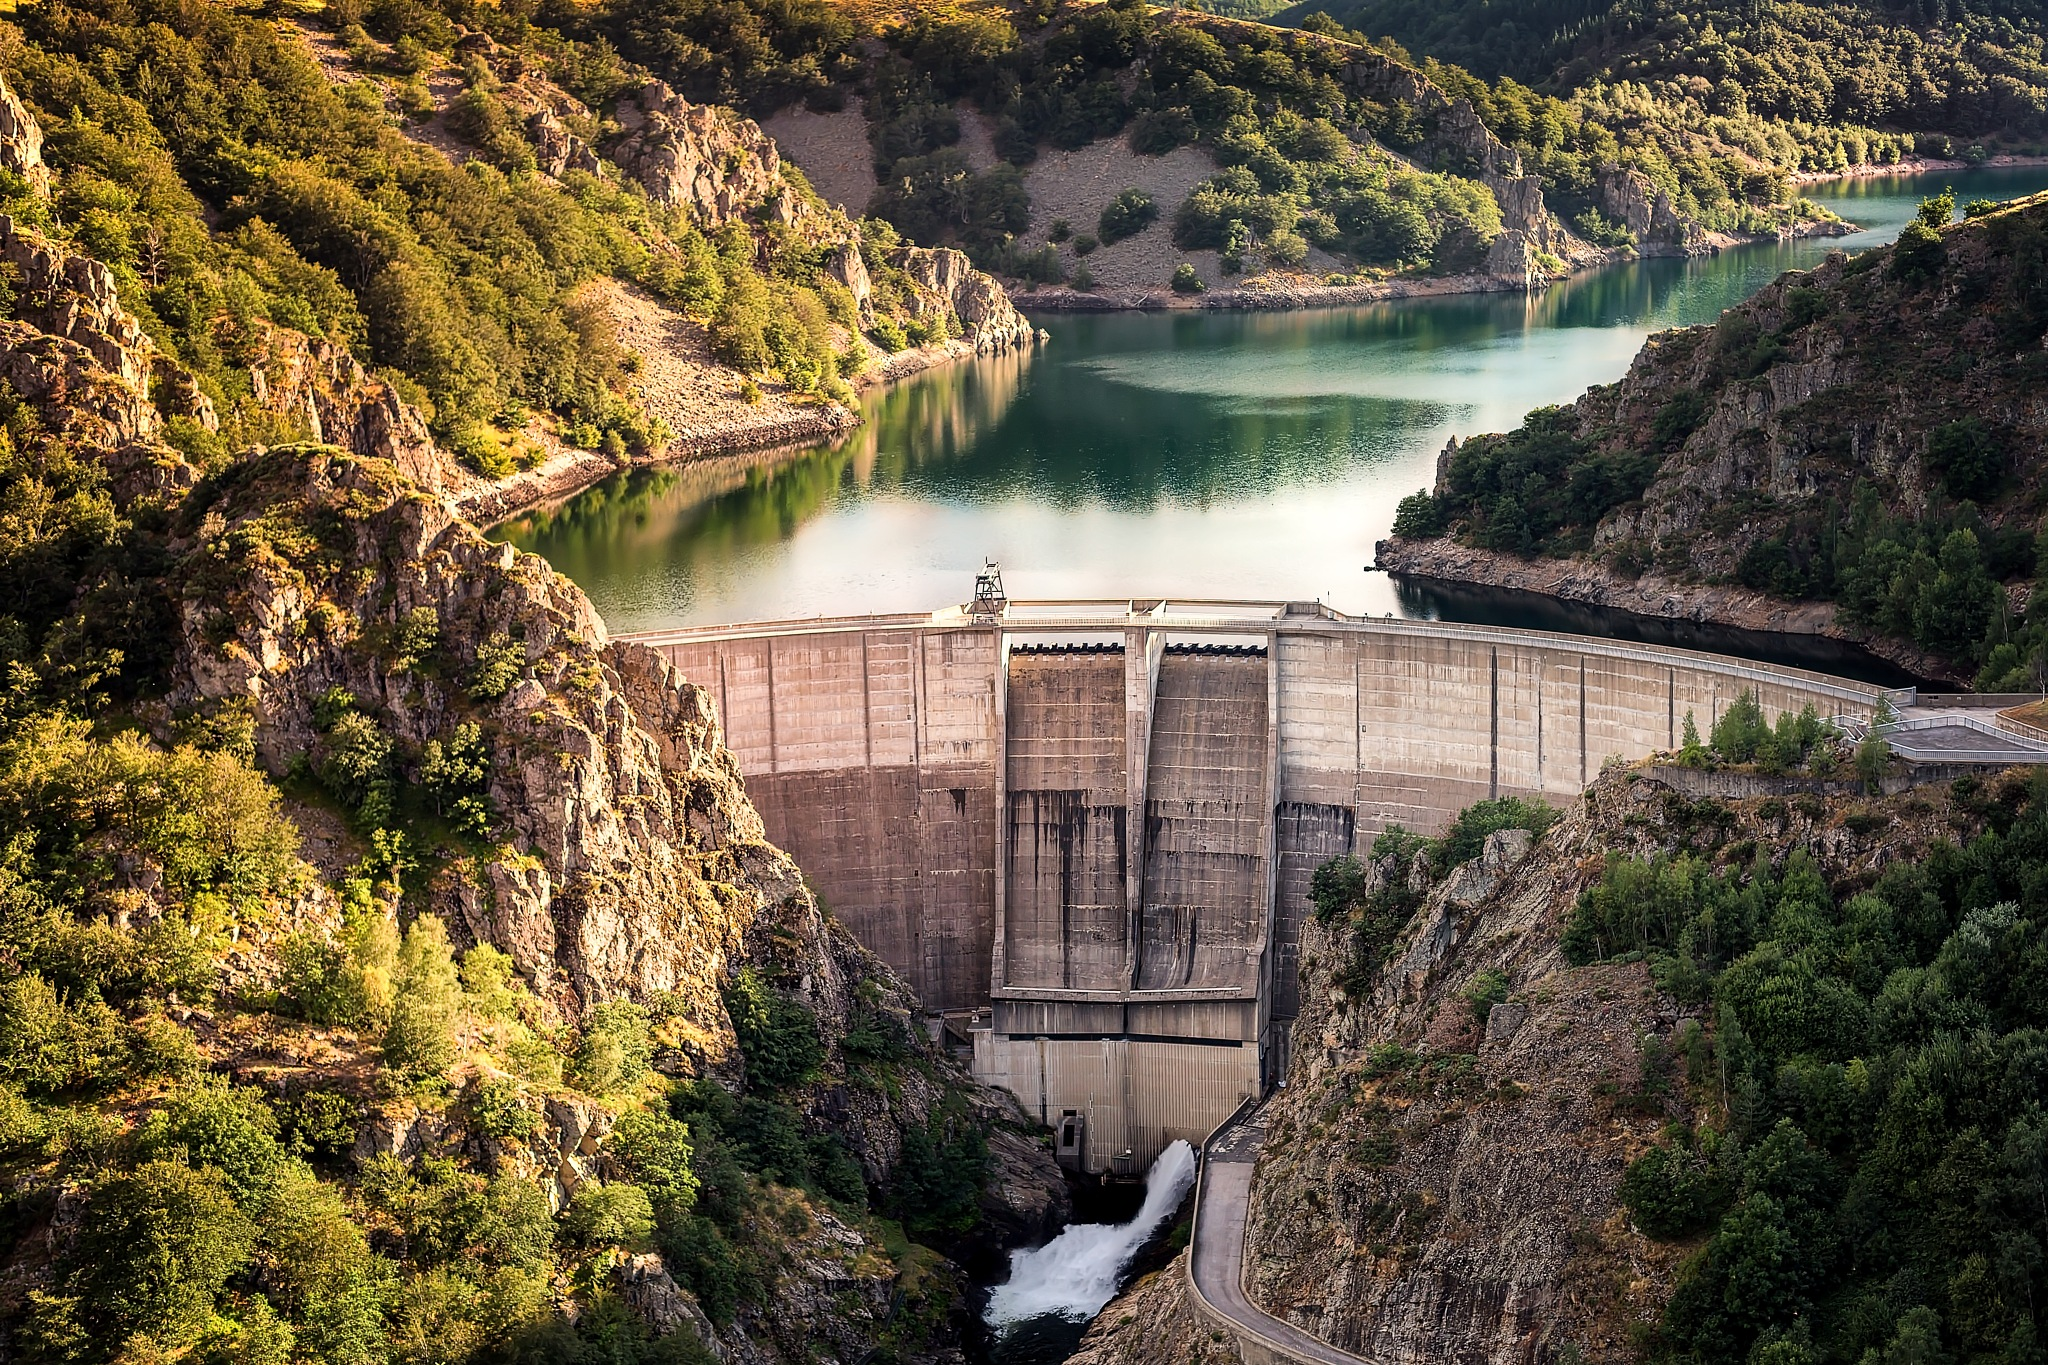 Hydroelectric dam by Chris Butler